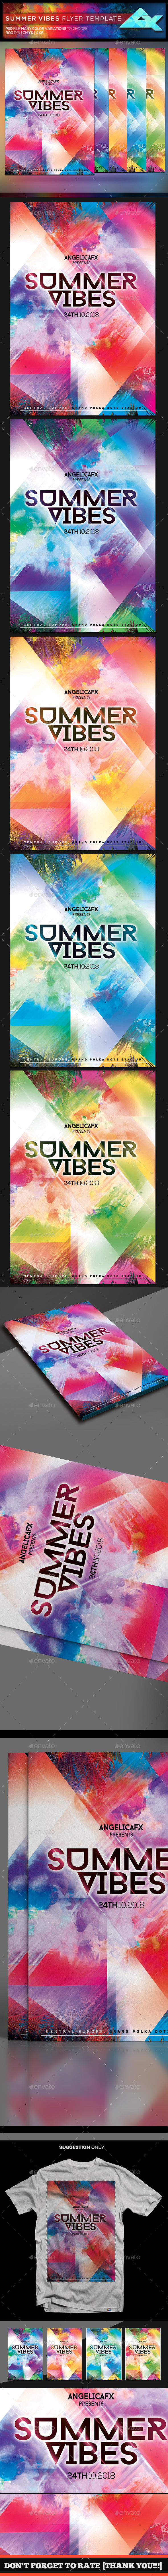 Summer Vibes Flyer Template - Flyers Print Templates